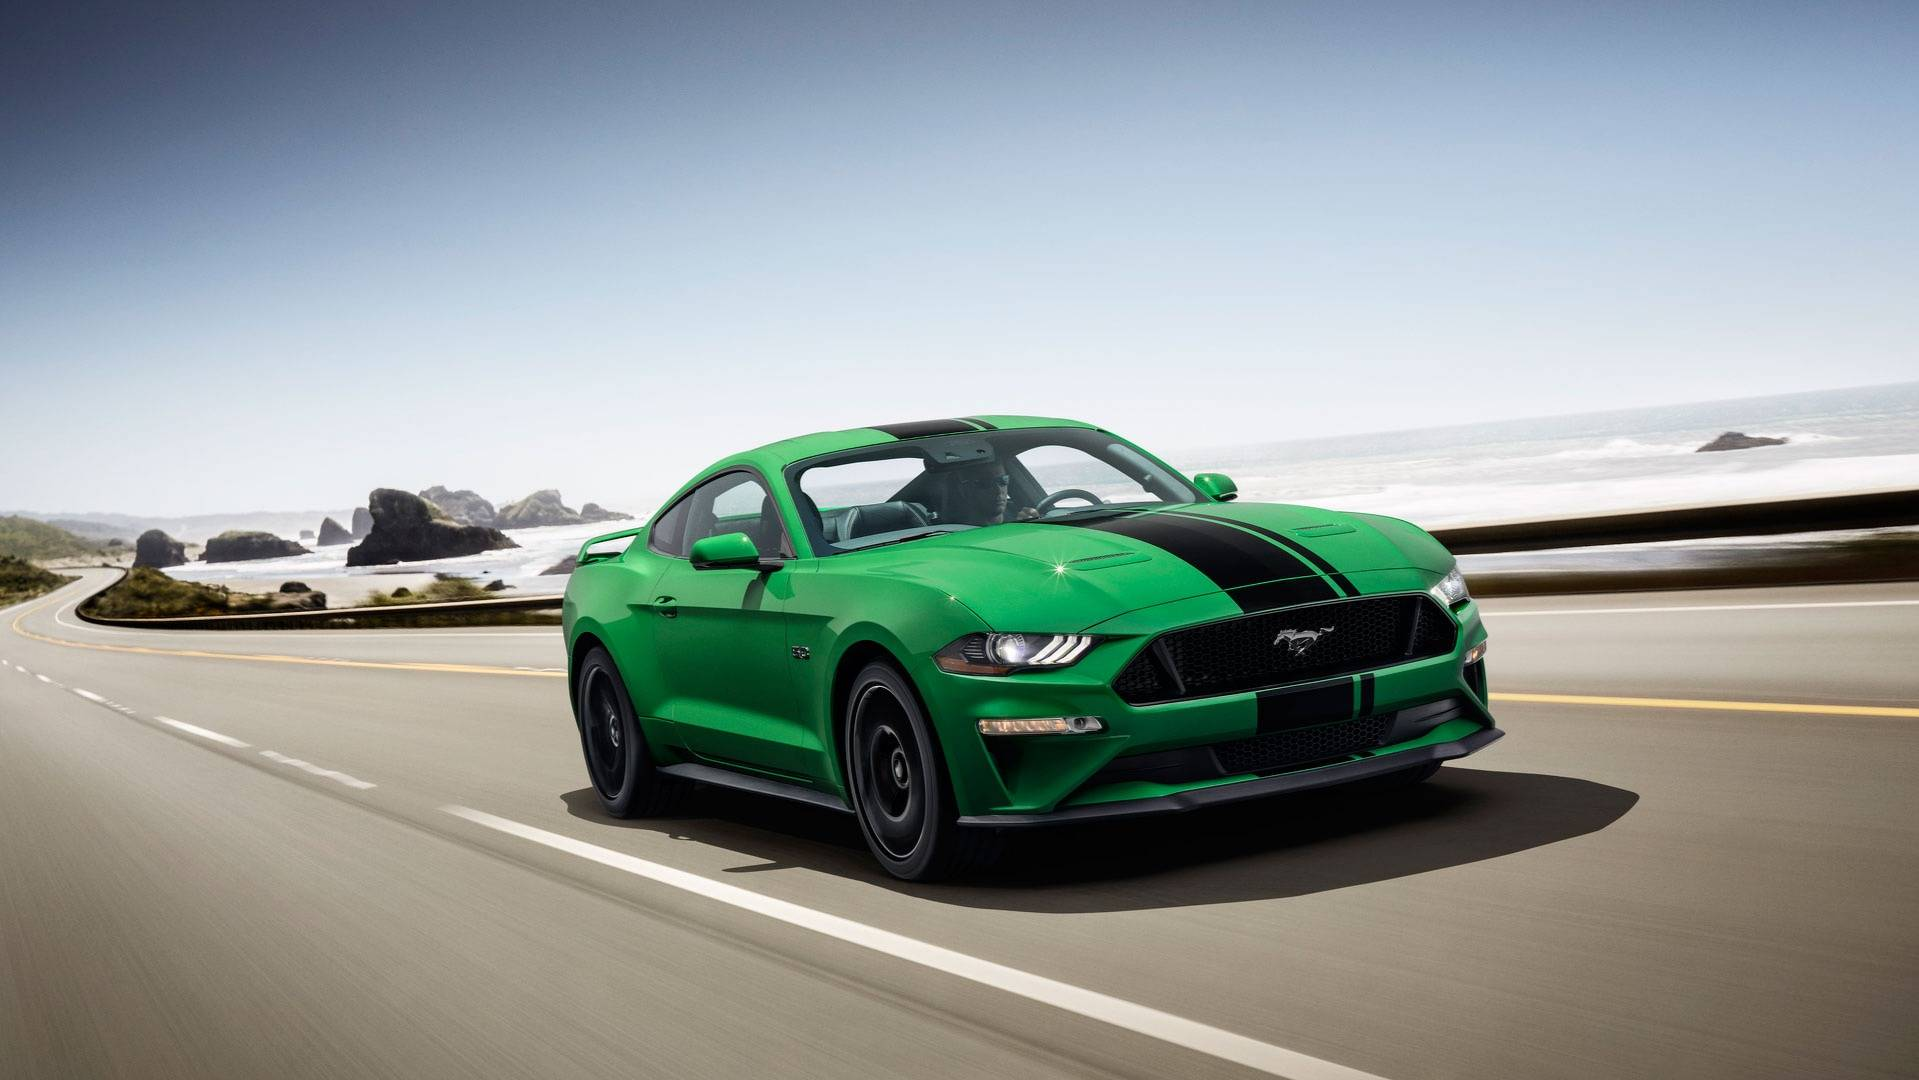 Mustang smash pony car hulks out with new green color option